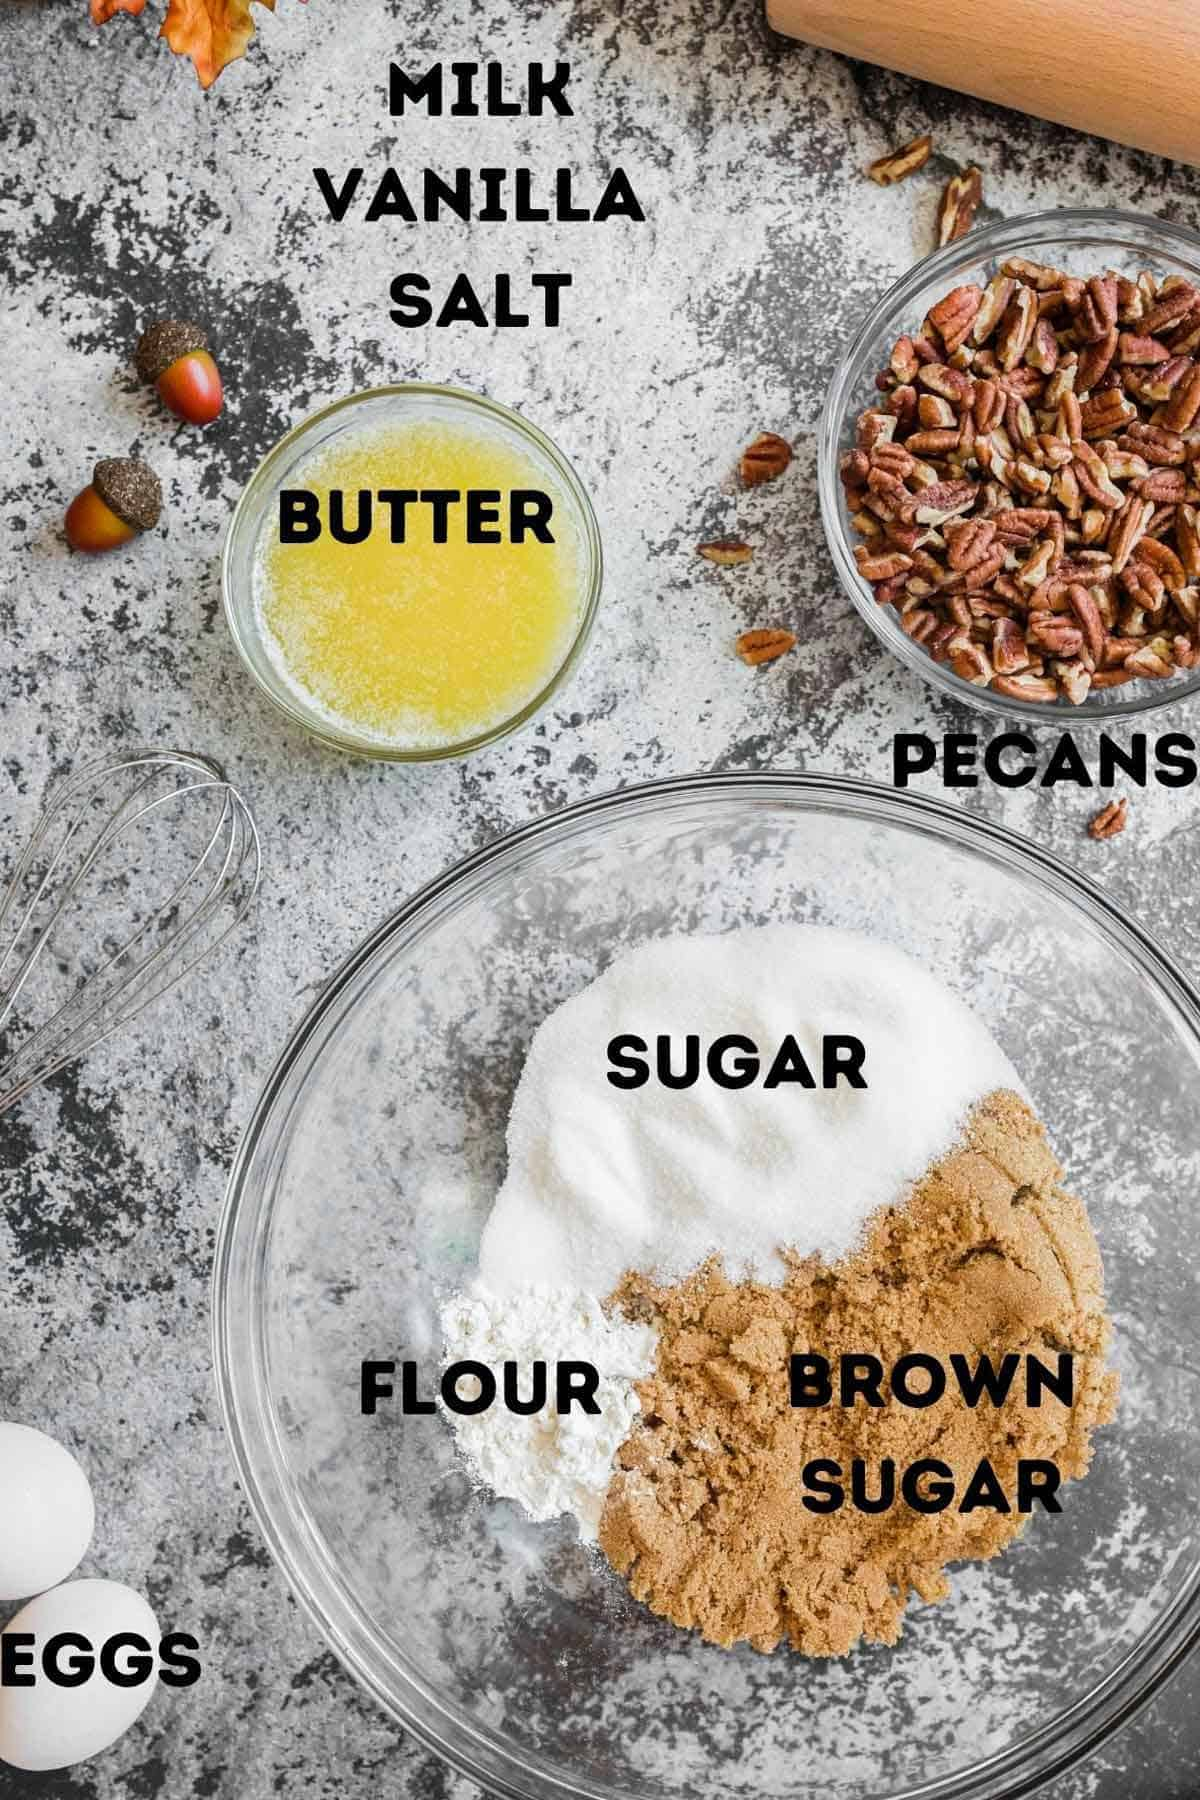 Sugar, butter, and other ingredients to make homemade pecan pie.